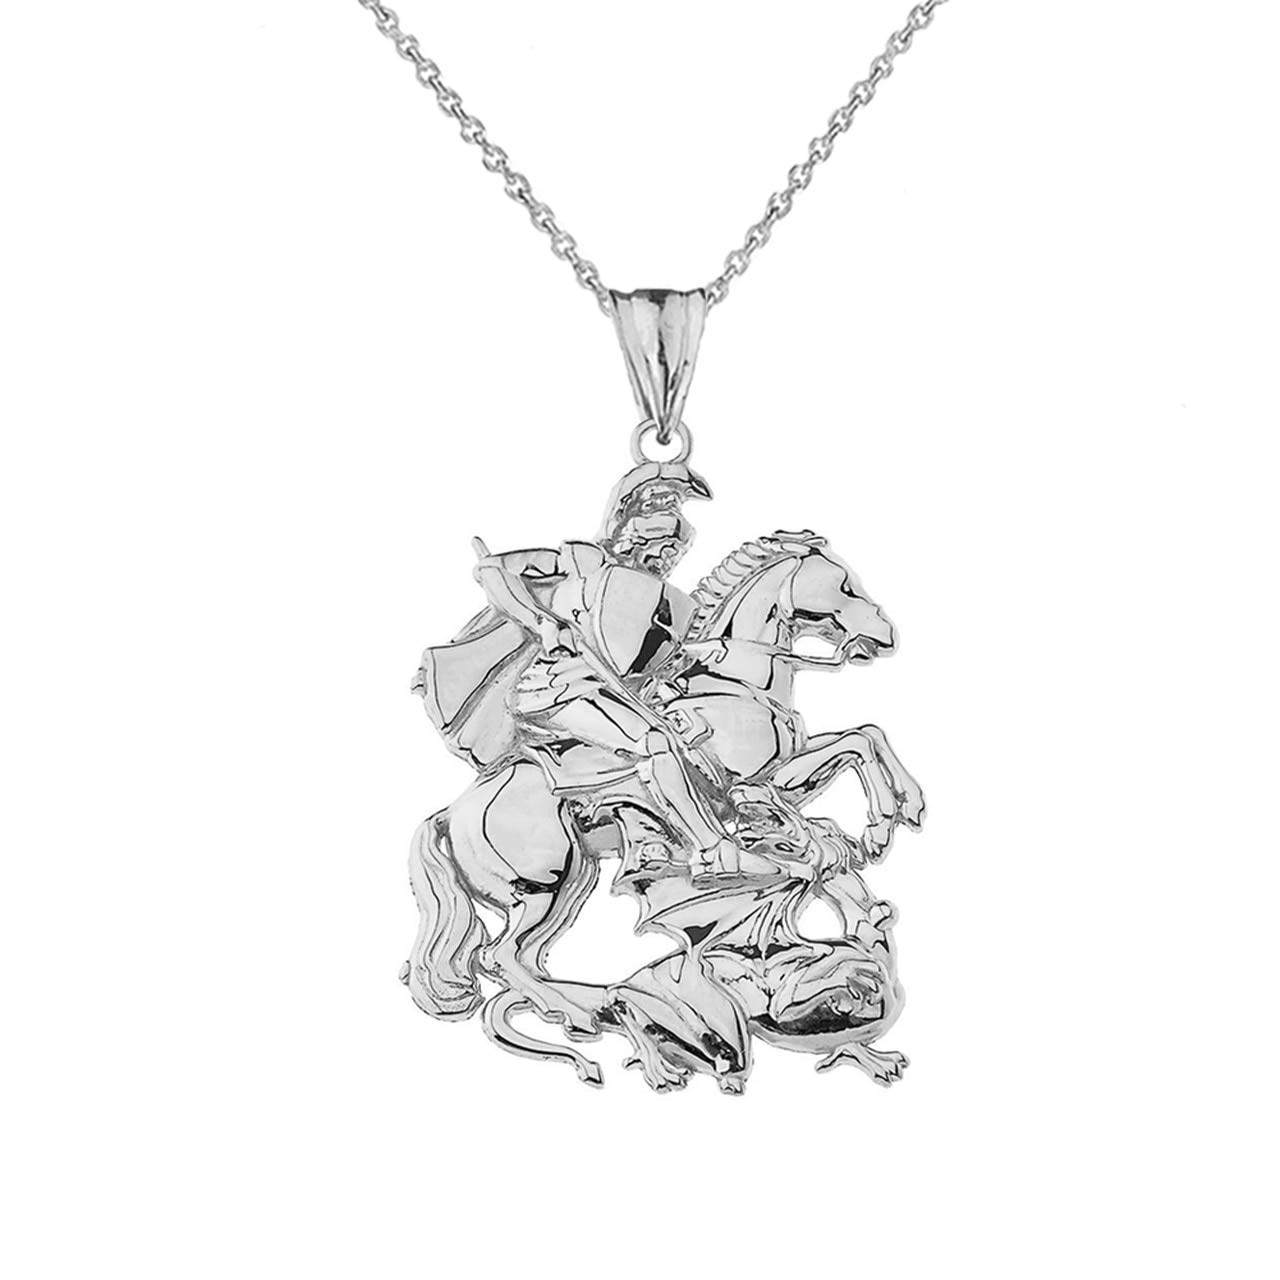 22 Certified Sterling Silver St George The Dragon Slayer Pendant Necklace